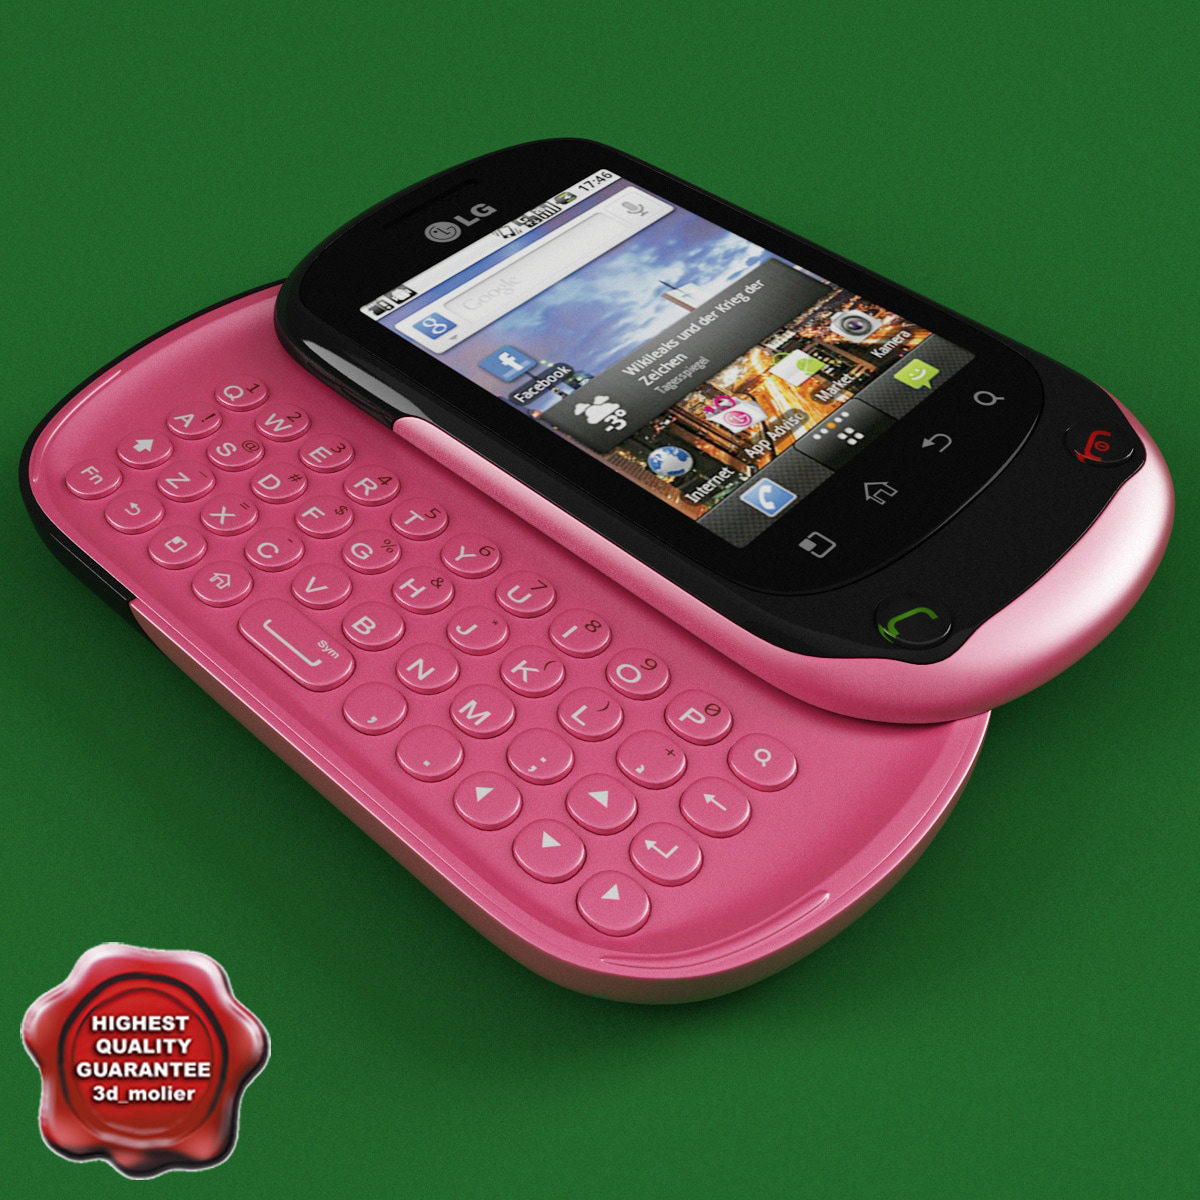 LG_C550_Optimus_Chat_Pink_00.jpg